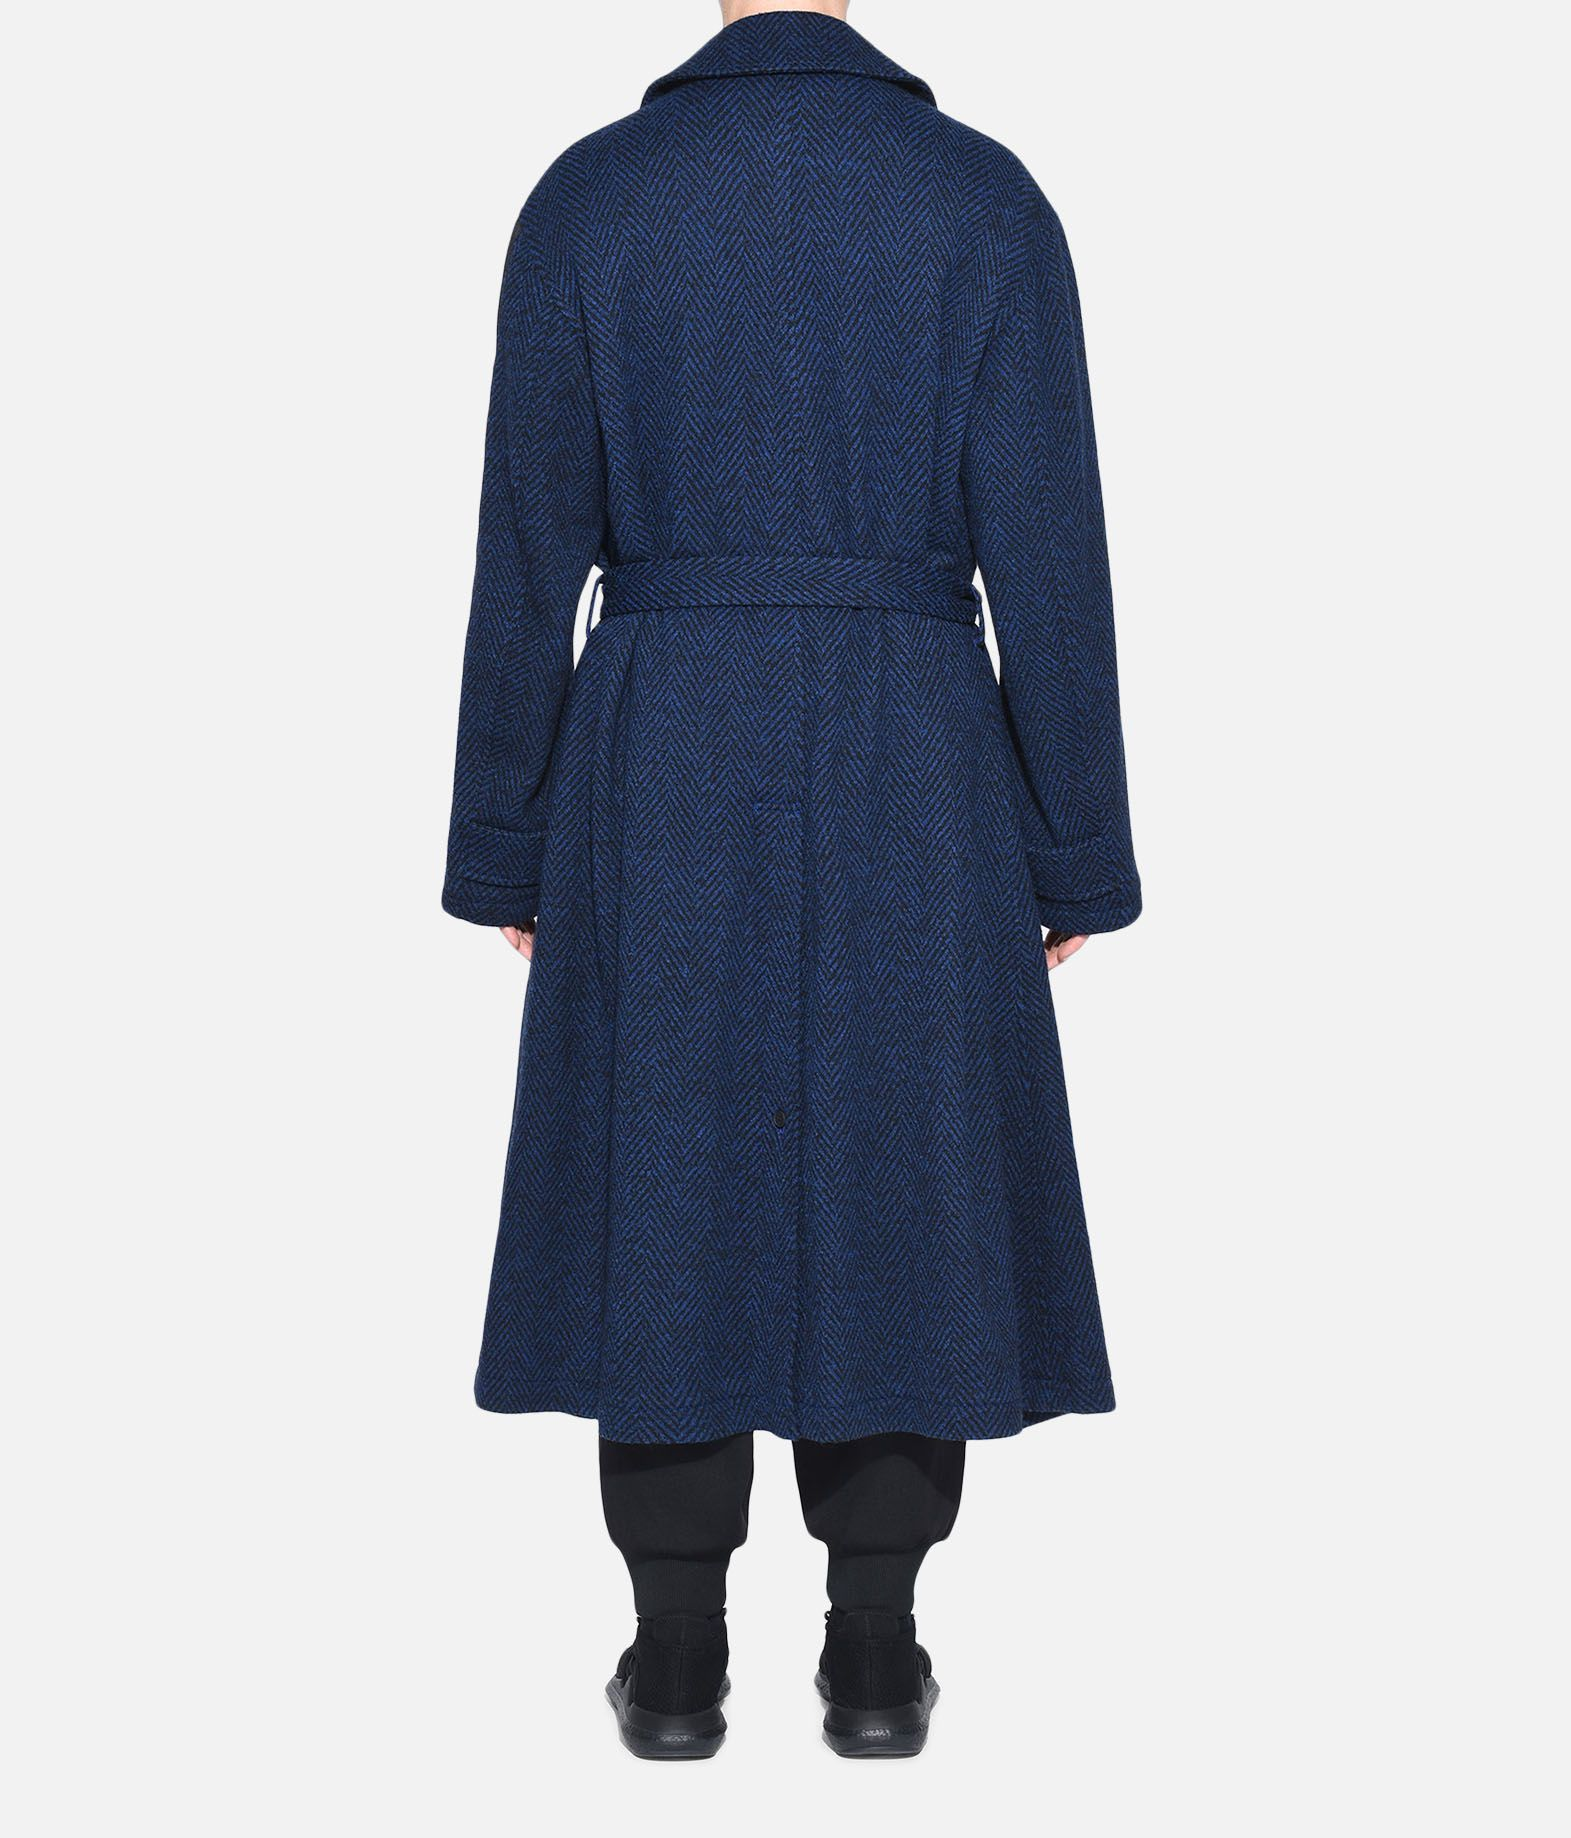 Y-3 Y-3 Tailored Wool Coat Coat Man d